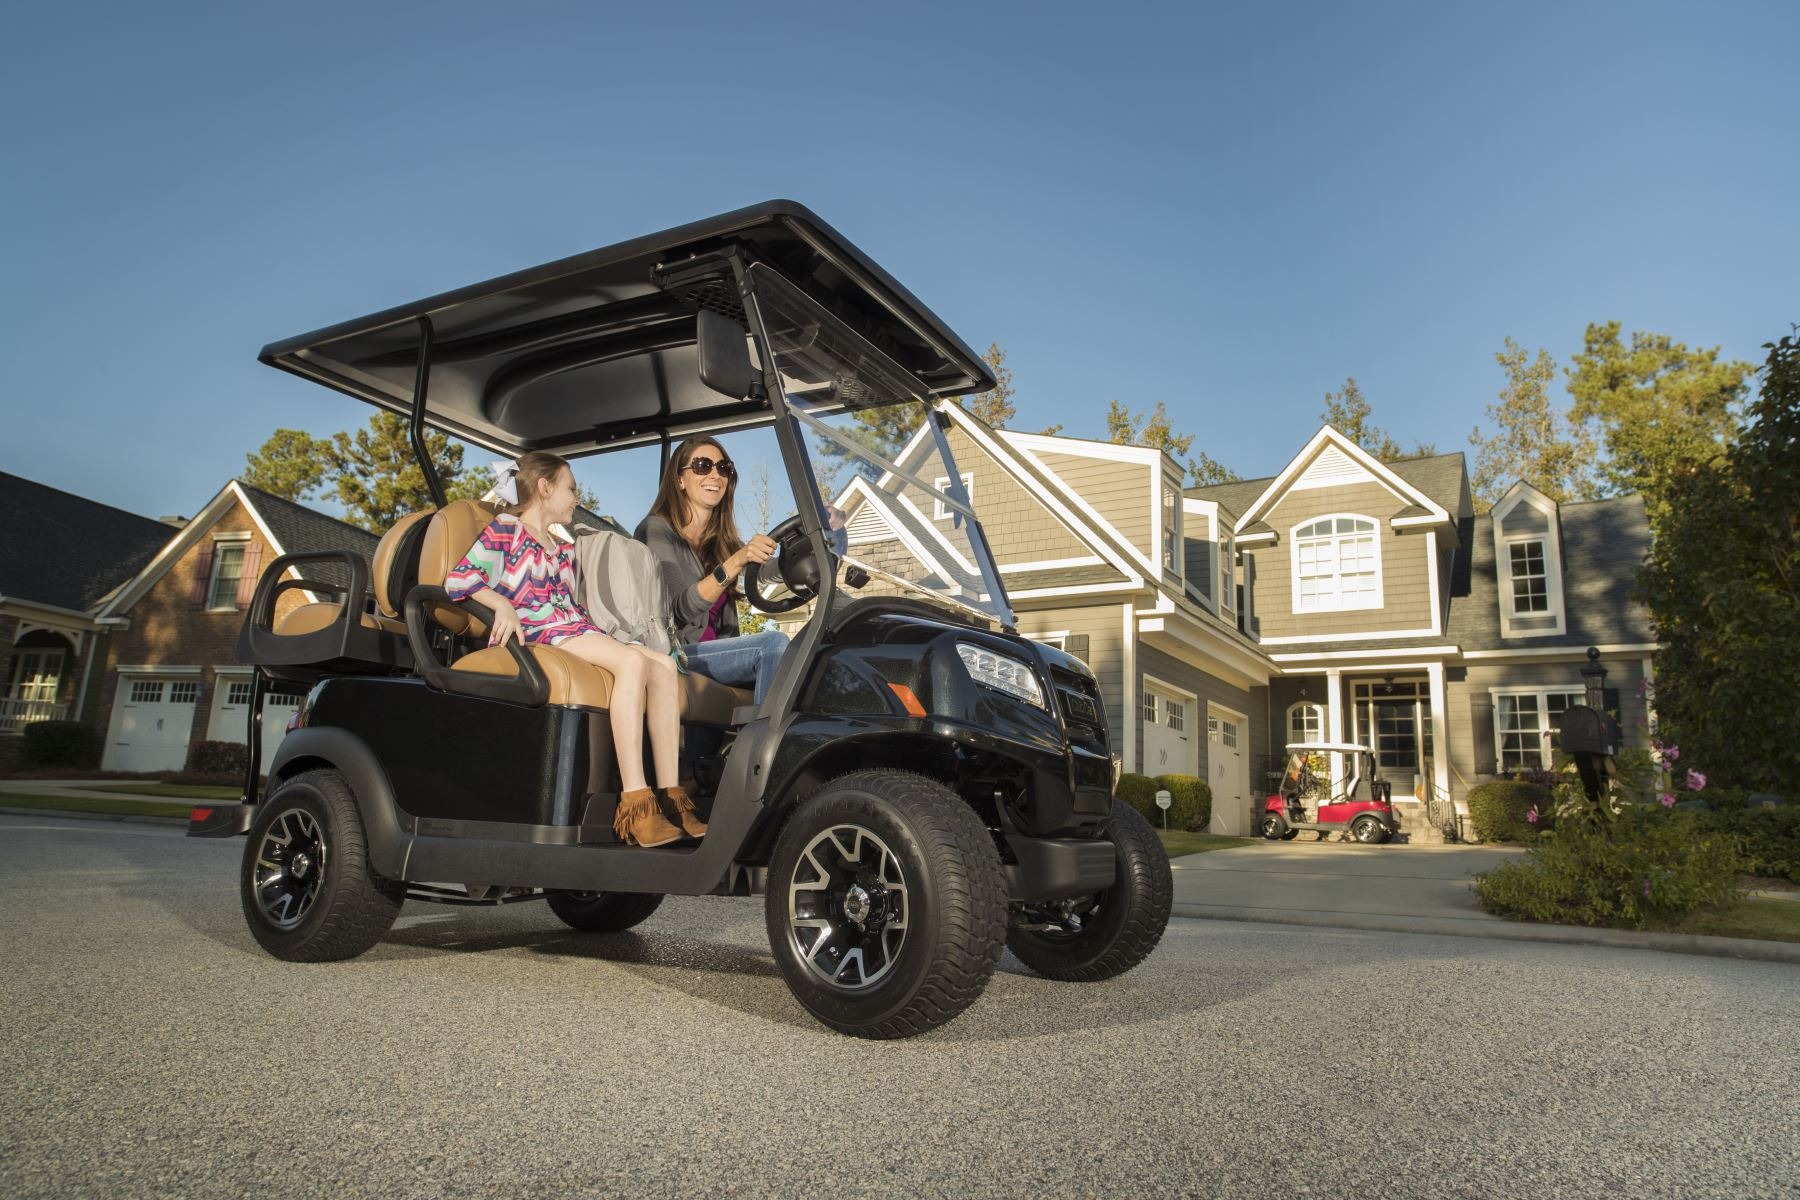 Rent your group a golf cart fleet